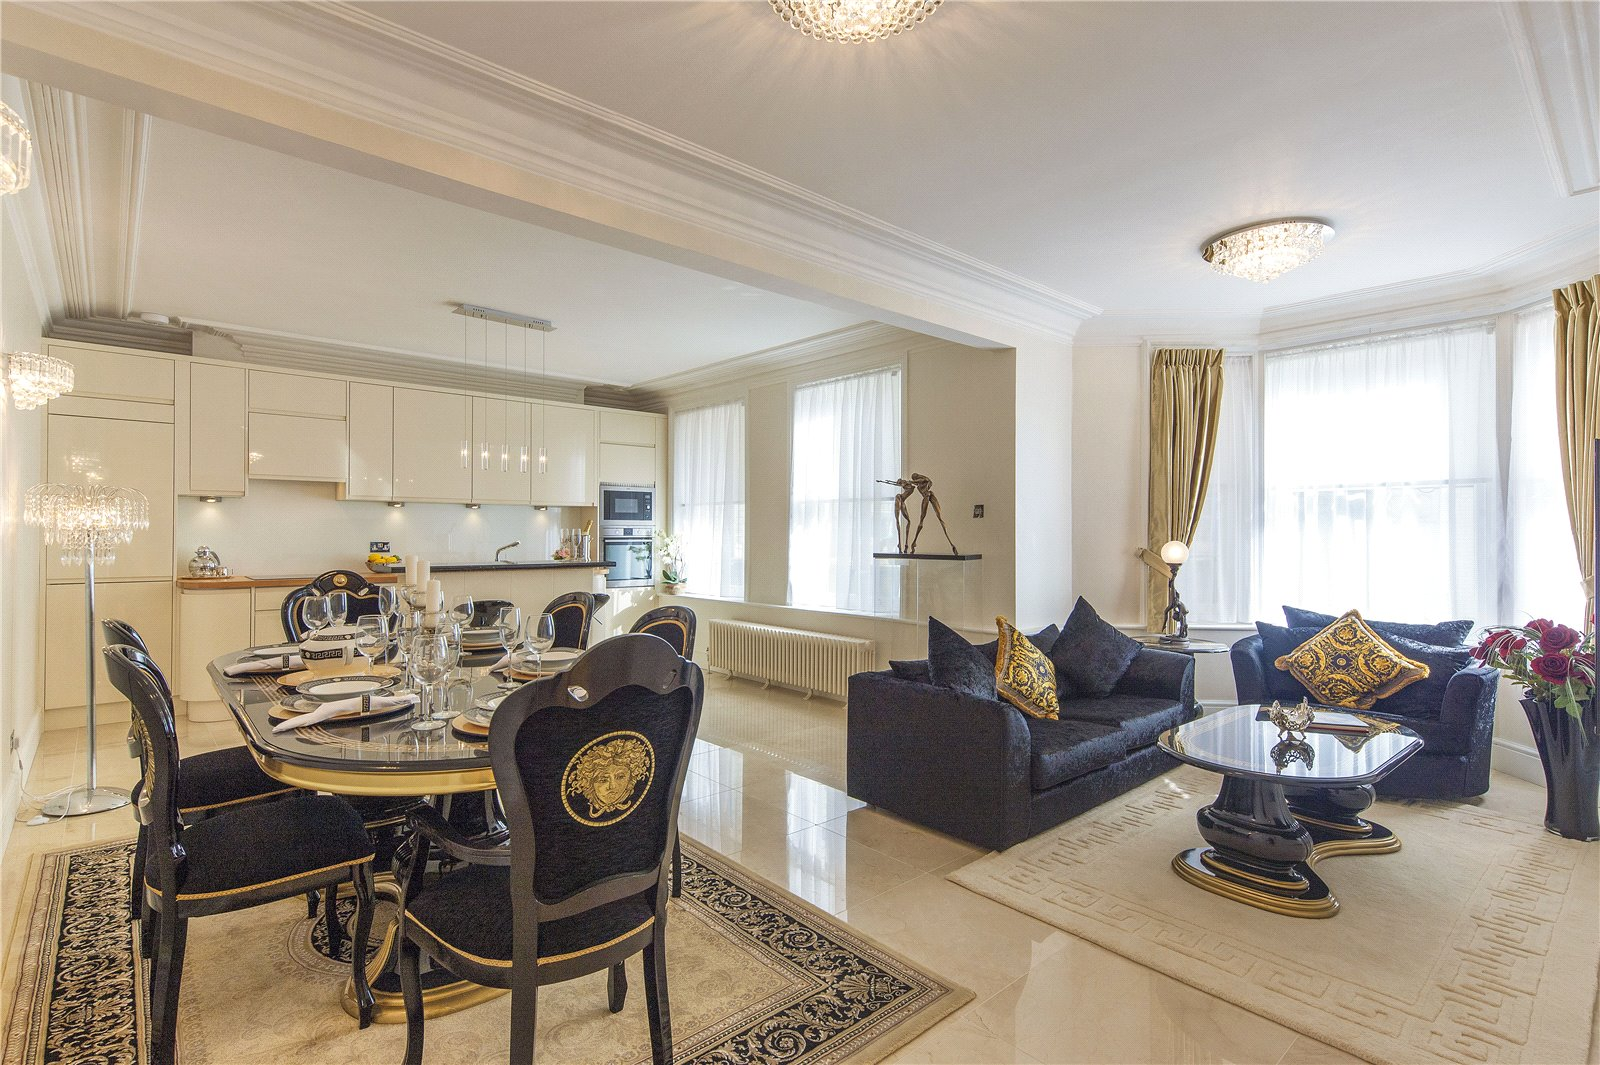 Apartment for Sale at Park Mansions, Knightsbridge, London, SW1X Park Mansions, Knightsbridge, London, SW1X